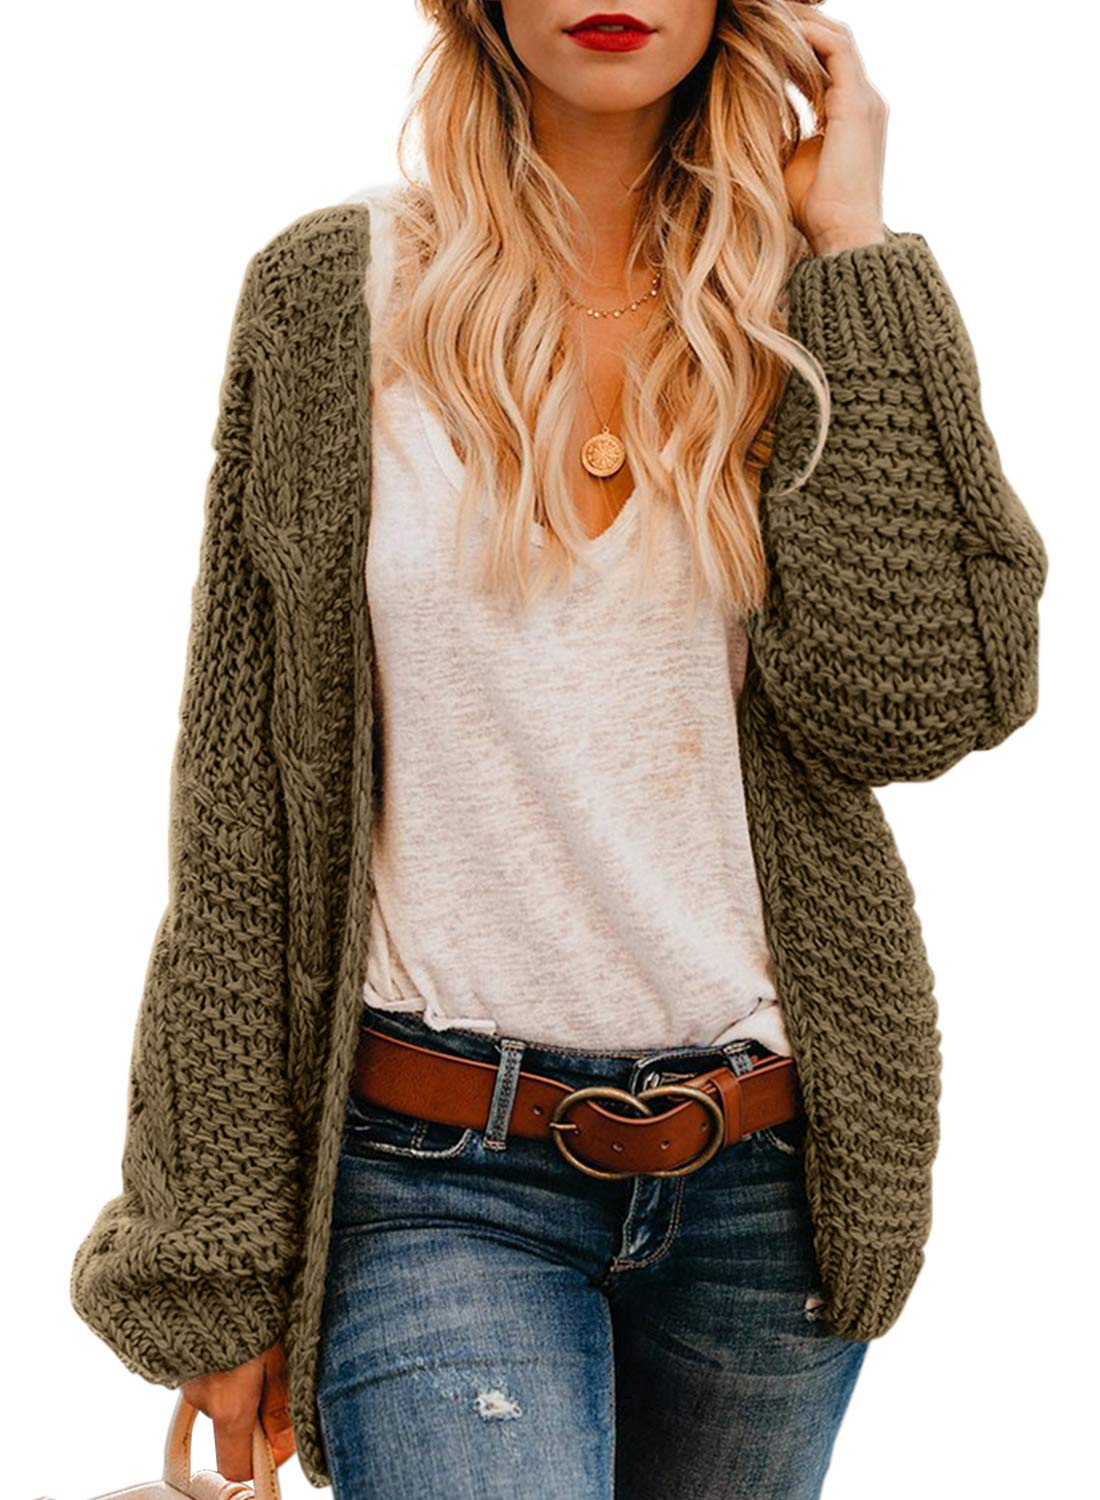 Astylish Womens Cardigans Ladies Autumn Warm Cozy Open Front Long Sleeve Chunky Cable Knit Ribbed Cardigan Sweater Olive Brown Large by Astylish